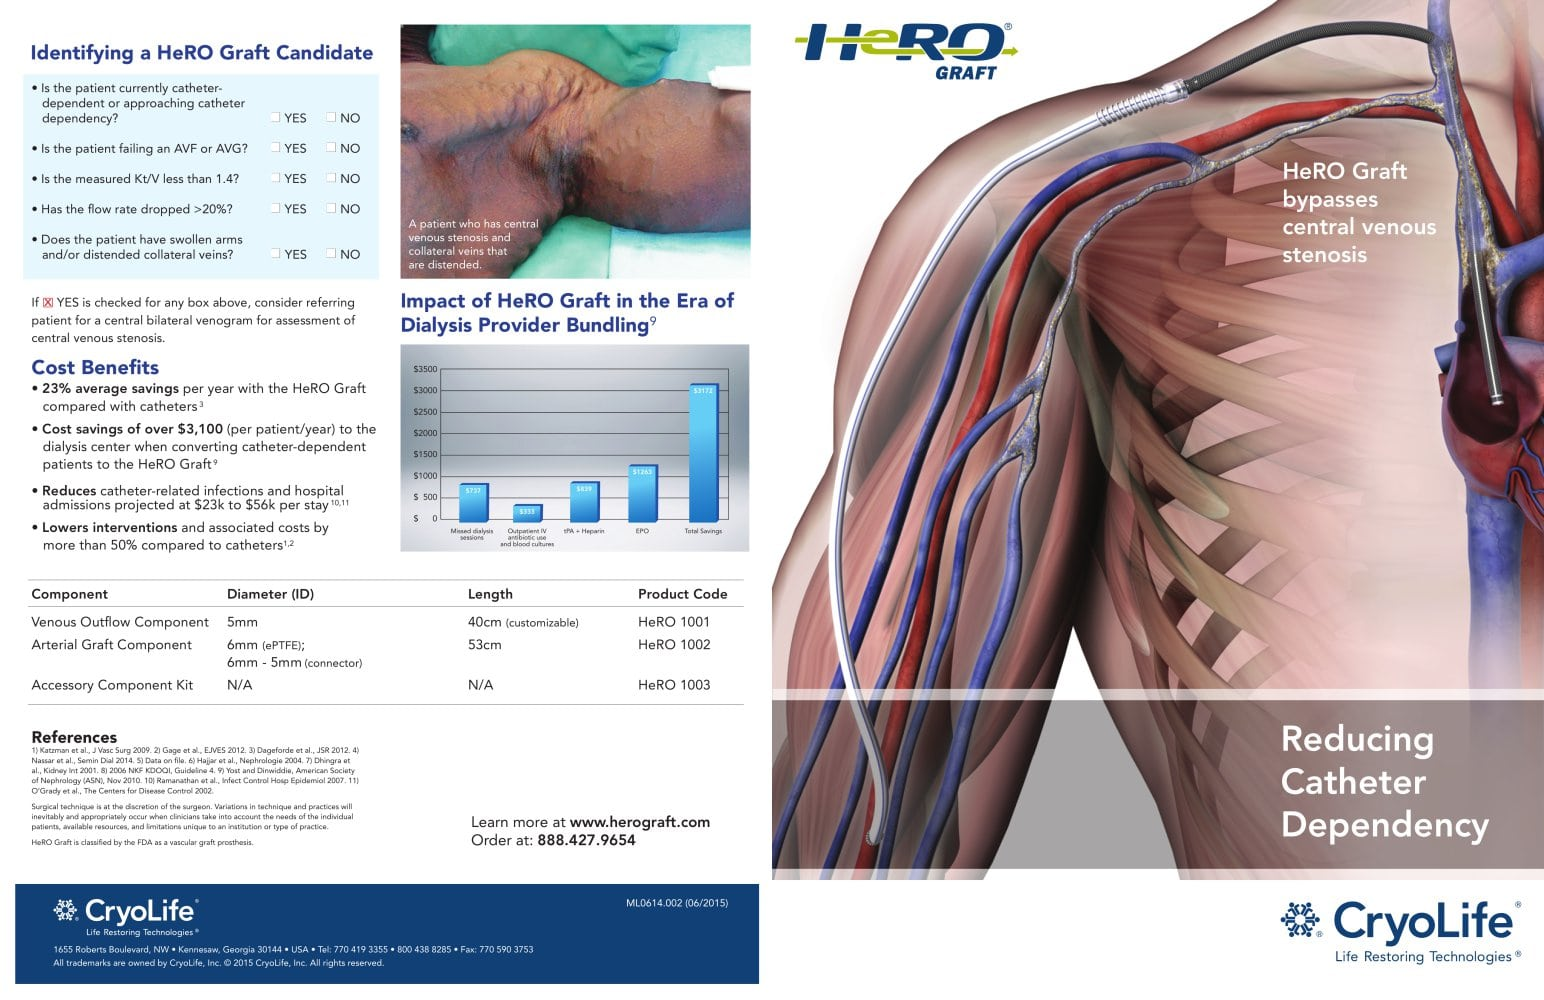 HeRO Graft bypasses central venous stenosis - Cryolife - PDF ...